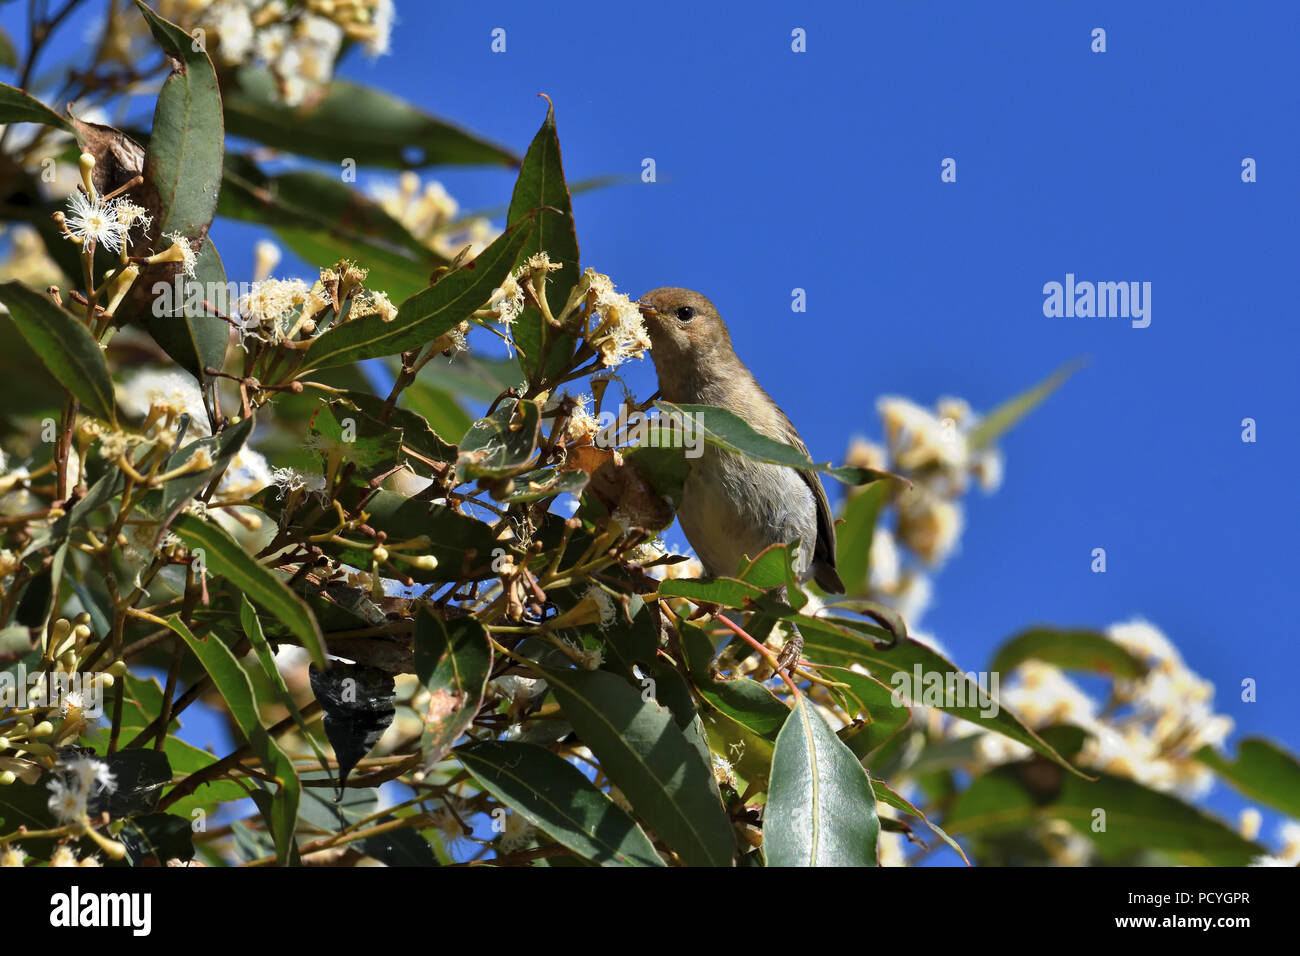 An Australian, Queensland Female Scarlet Honeyeater ( Myzomela sanguinolenta ) perched on a tree branch feeding on nectar - Stock Image